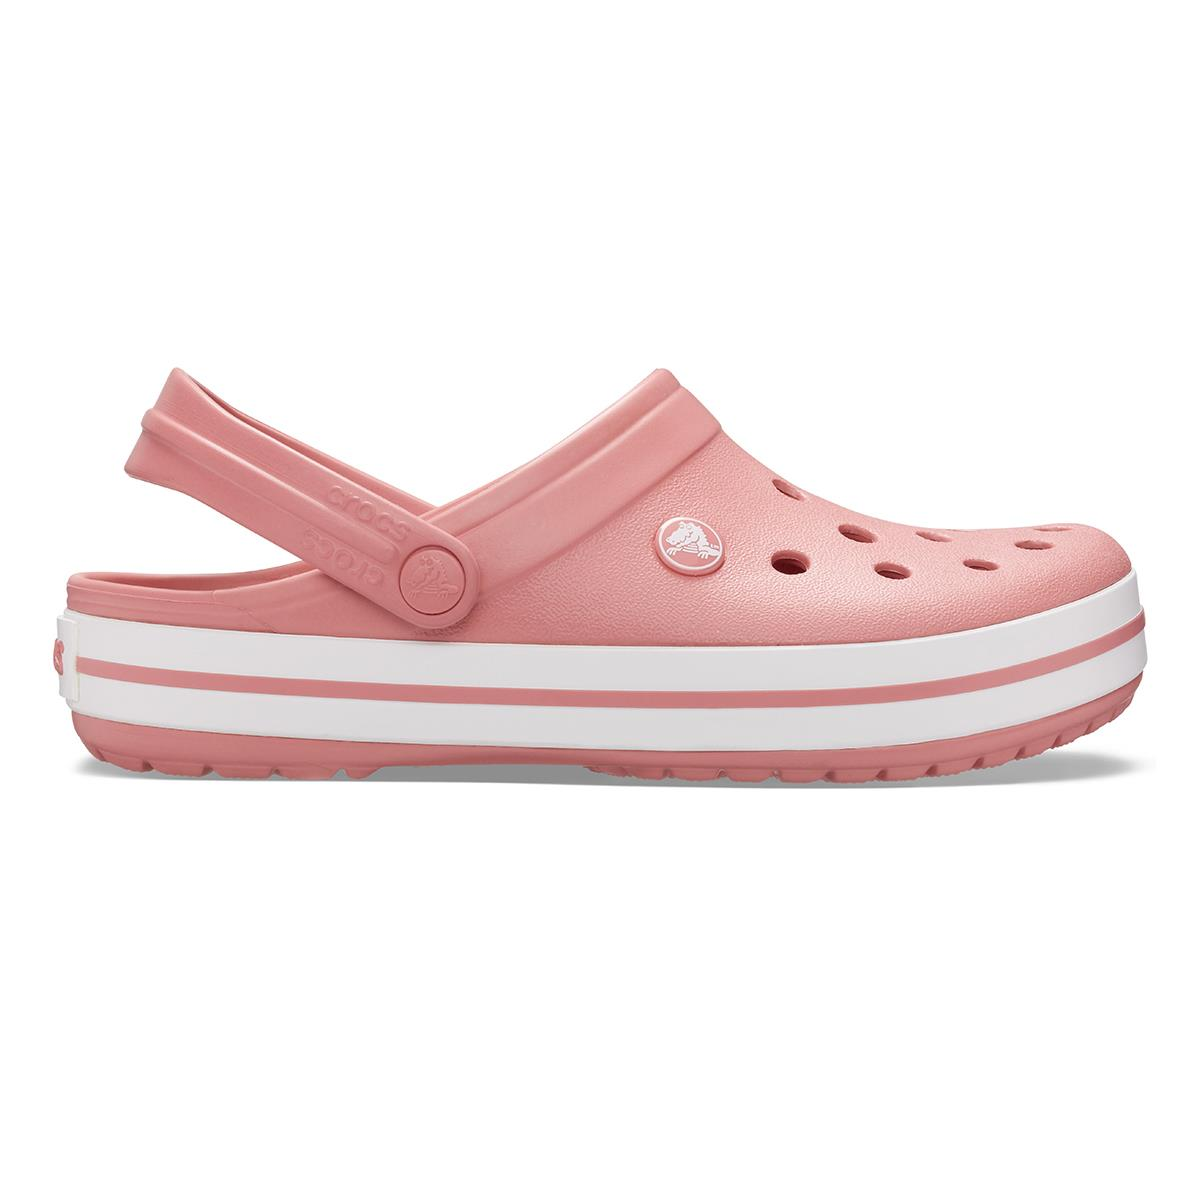 Crocs Crocband Terlik CR0921 6PH